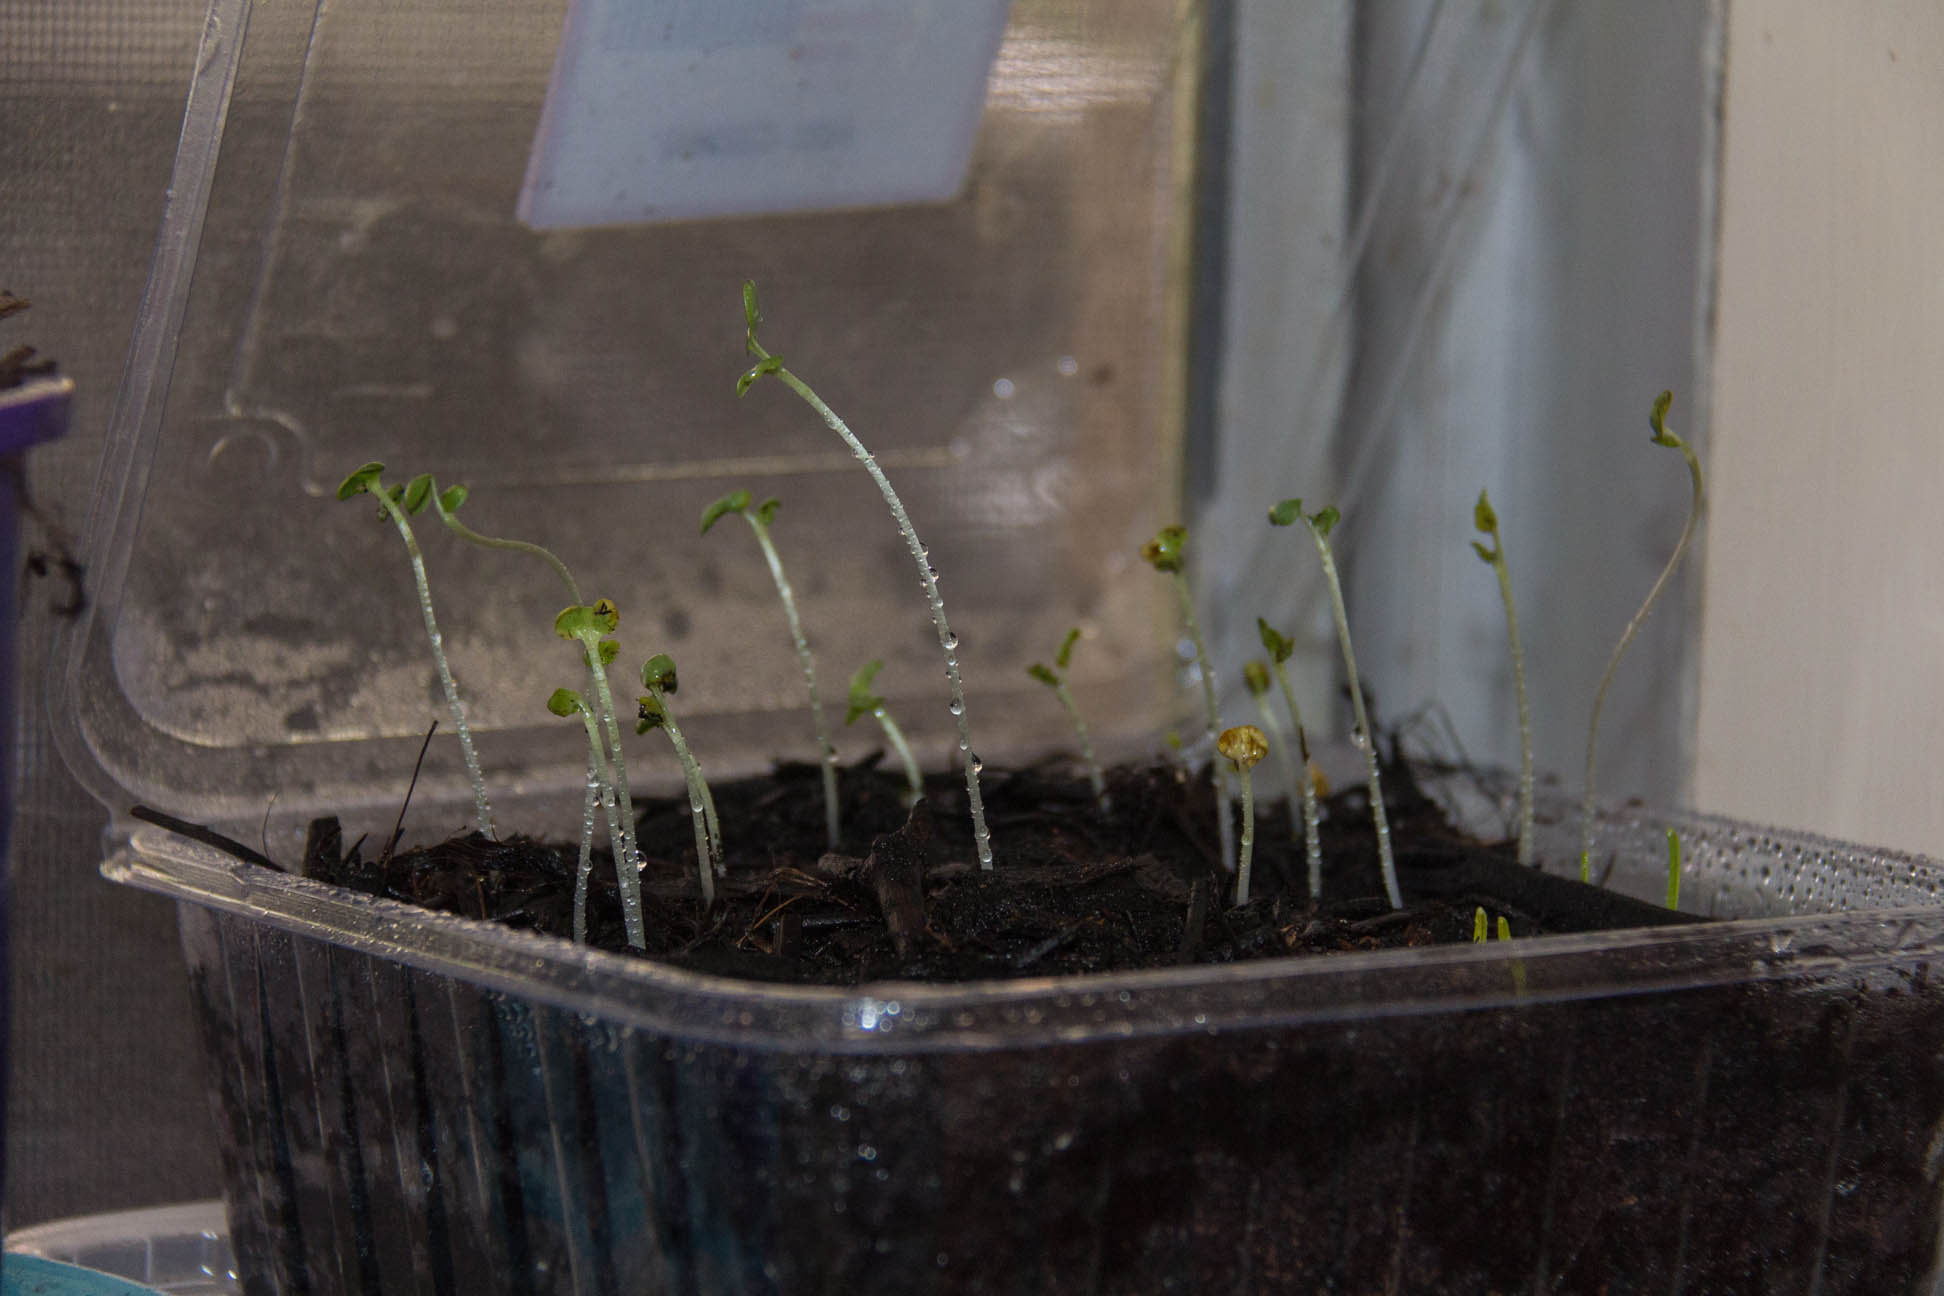 03/05/15 Day 10 The seedlings are going well. and more are sprouting :)